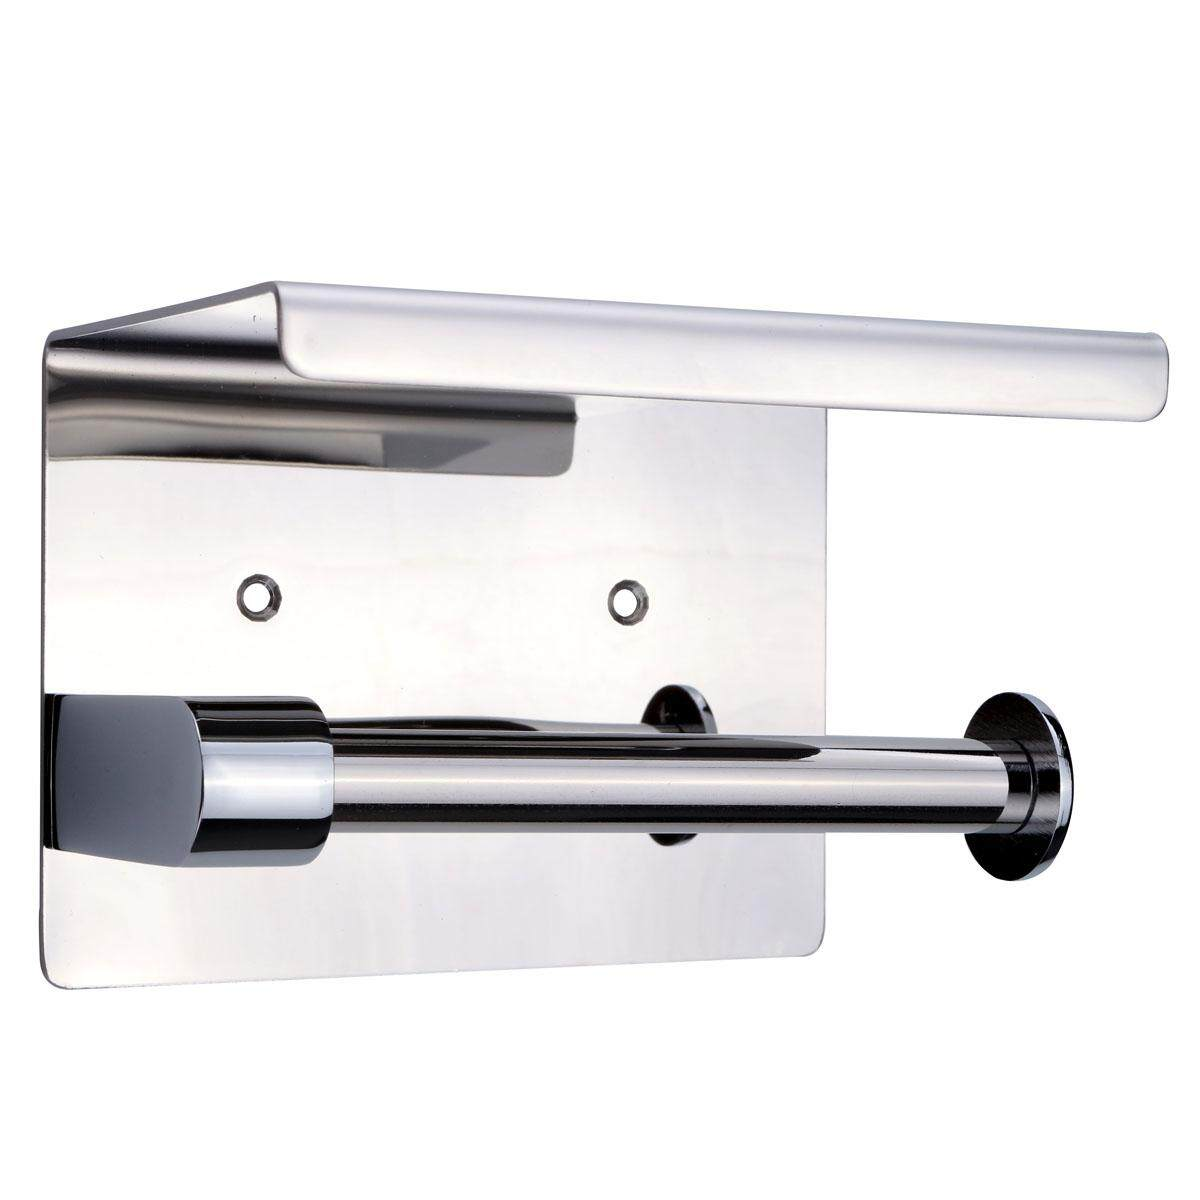 Stainless Bathroom Accessory Wall Mounted Toilet Paper Roll Holder Top Shelf - intl